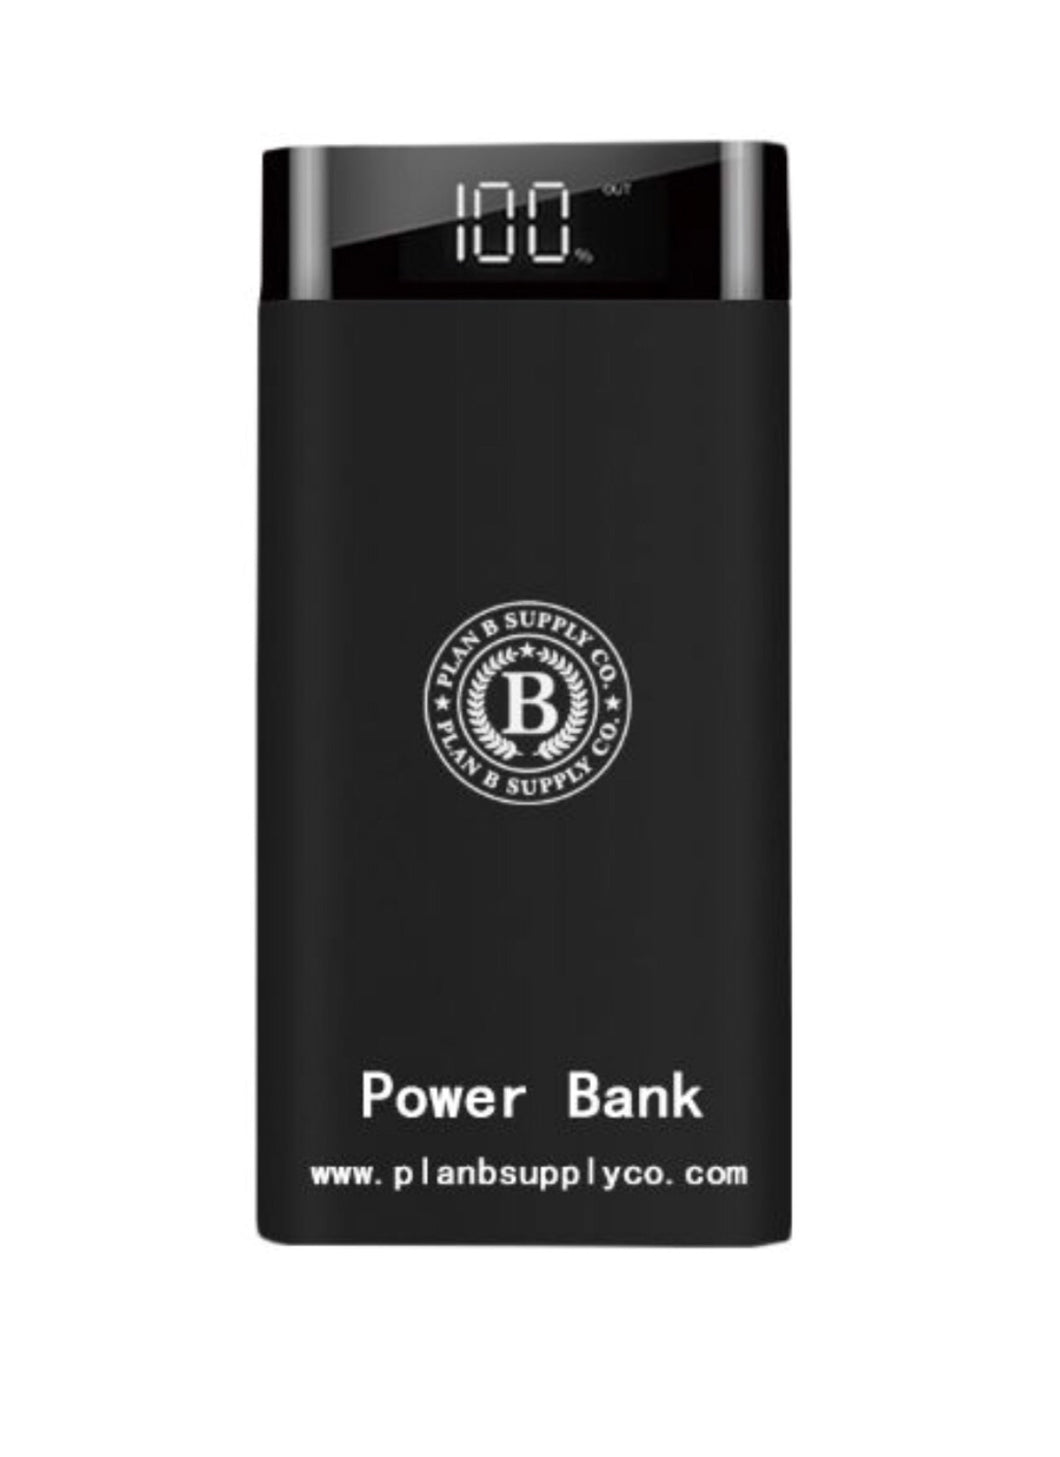 Plan b supply Co power bank 10,000 mah